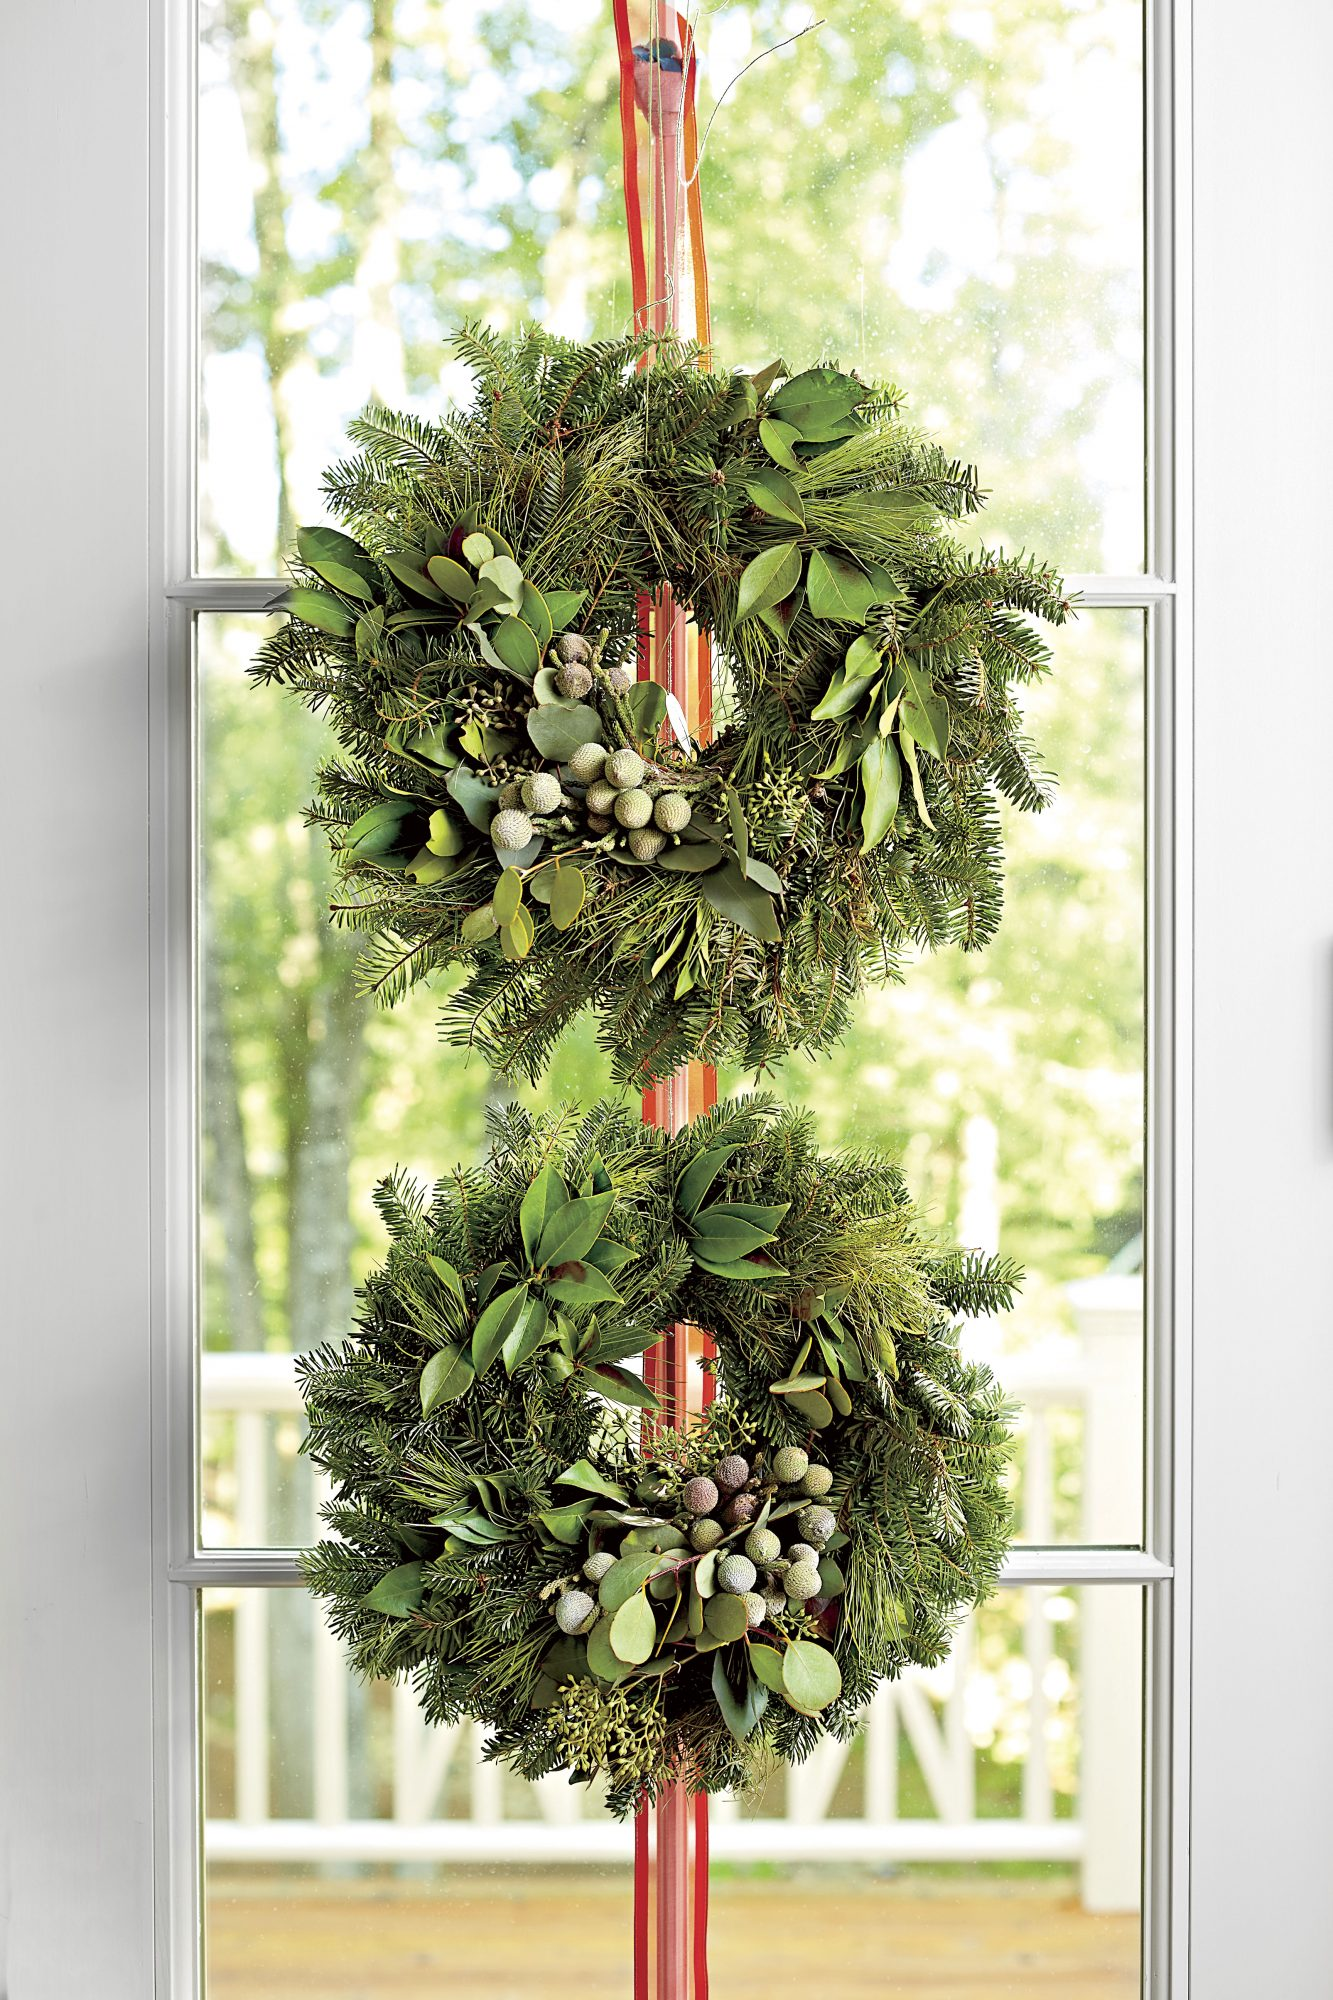 Two Wreaths Hanging on Door